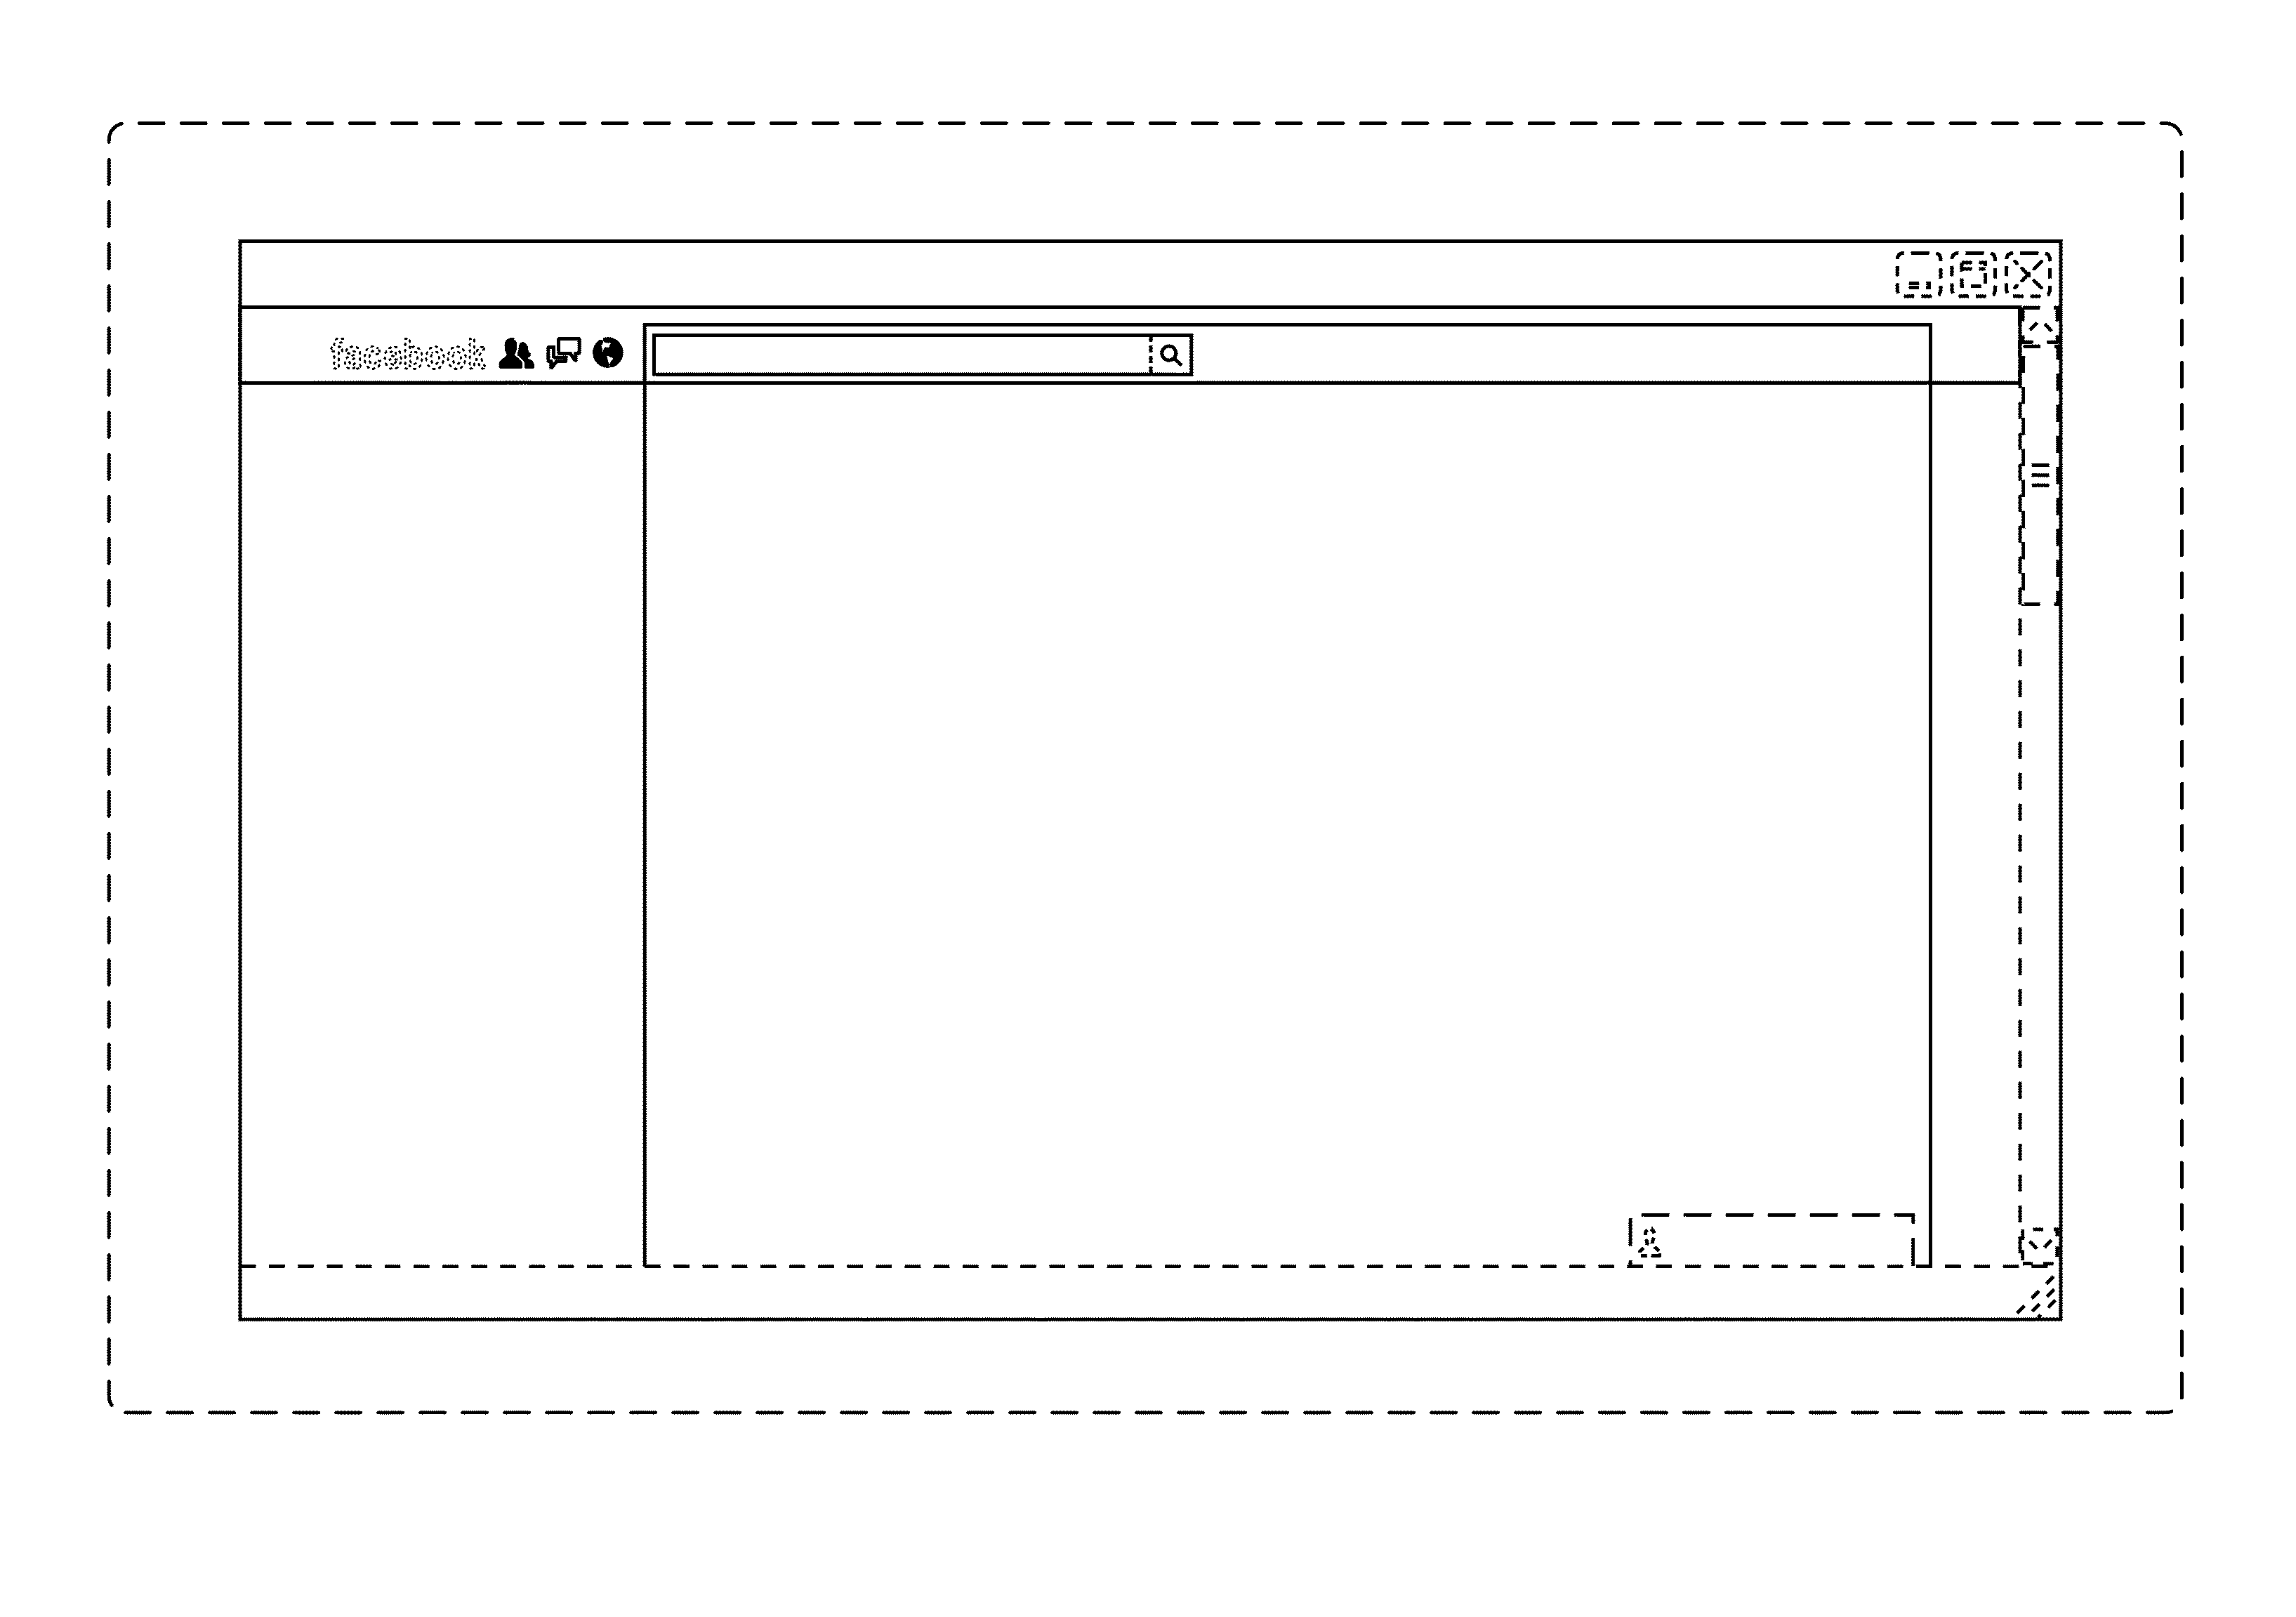 Facebook  patent by Mark Zuckerberg from 2013 for display panel of a programmed computer system with a graphical user interface - USD695304